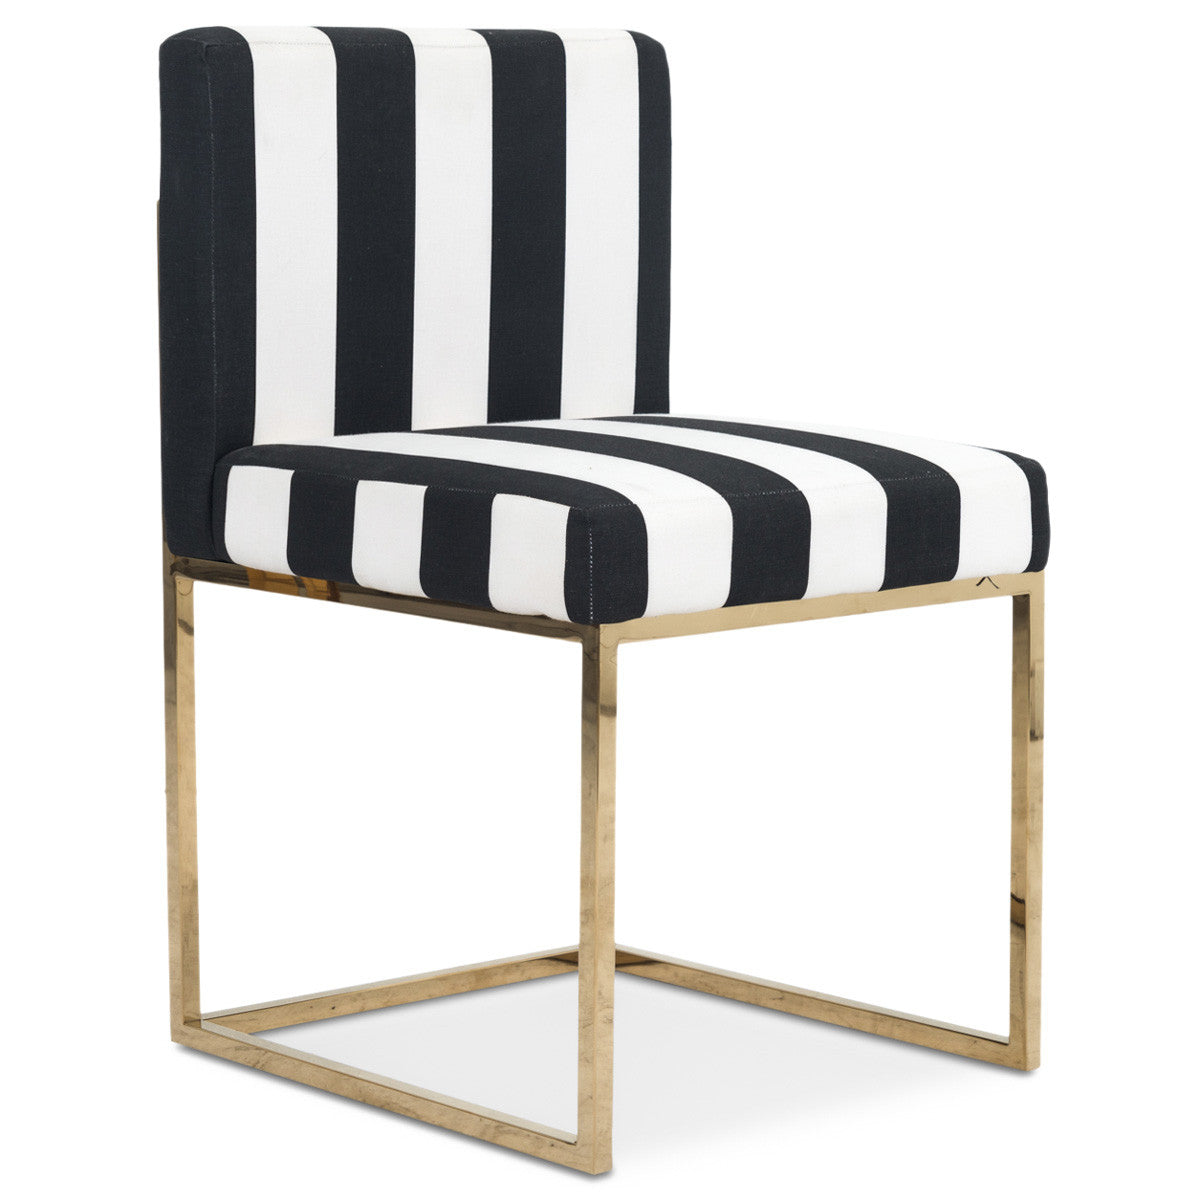 007 Dining Chair in Black and White Stripes - ModShop1.com